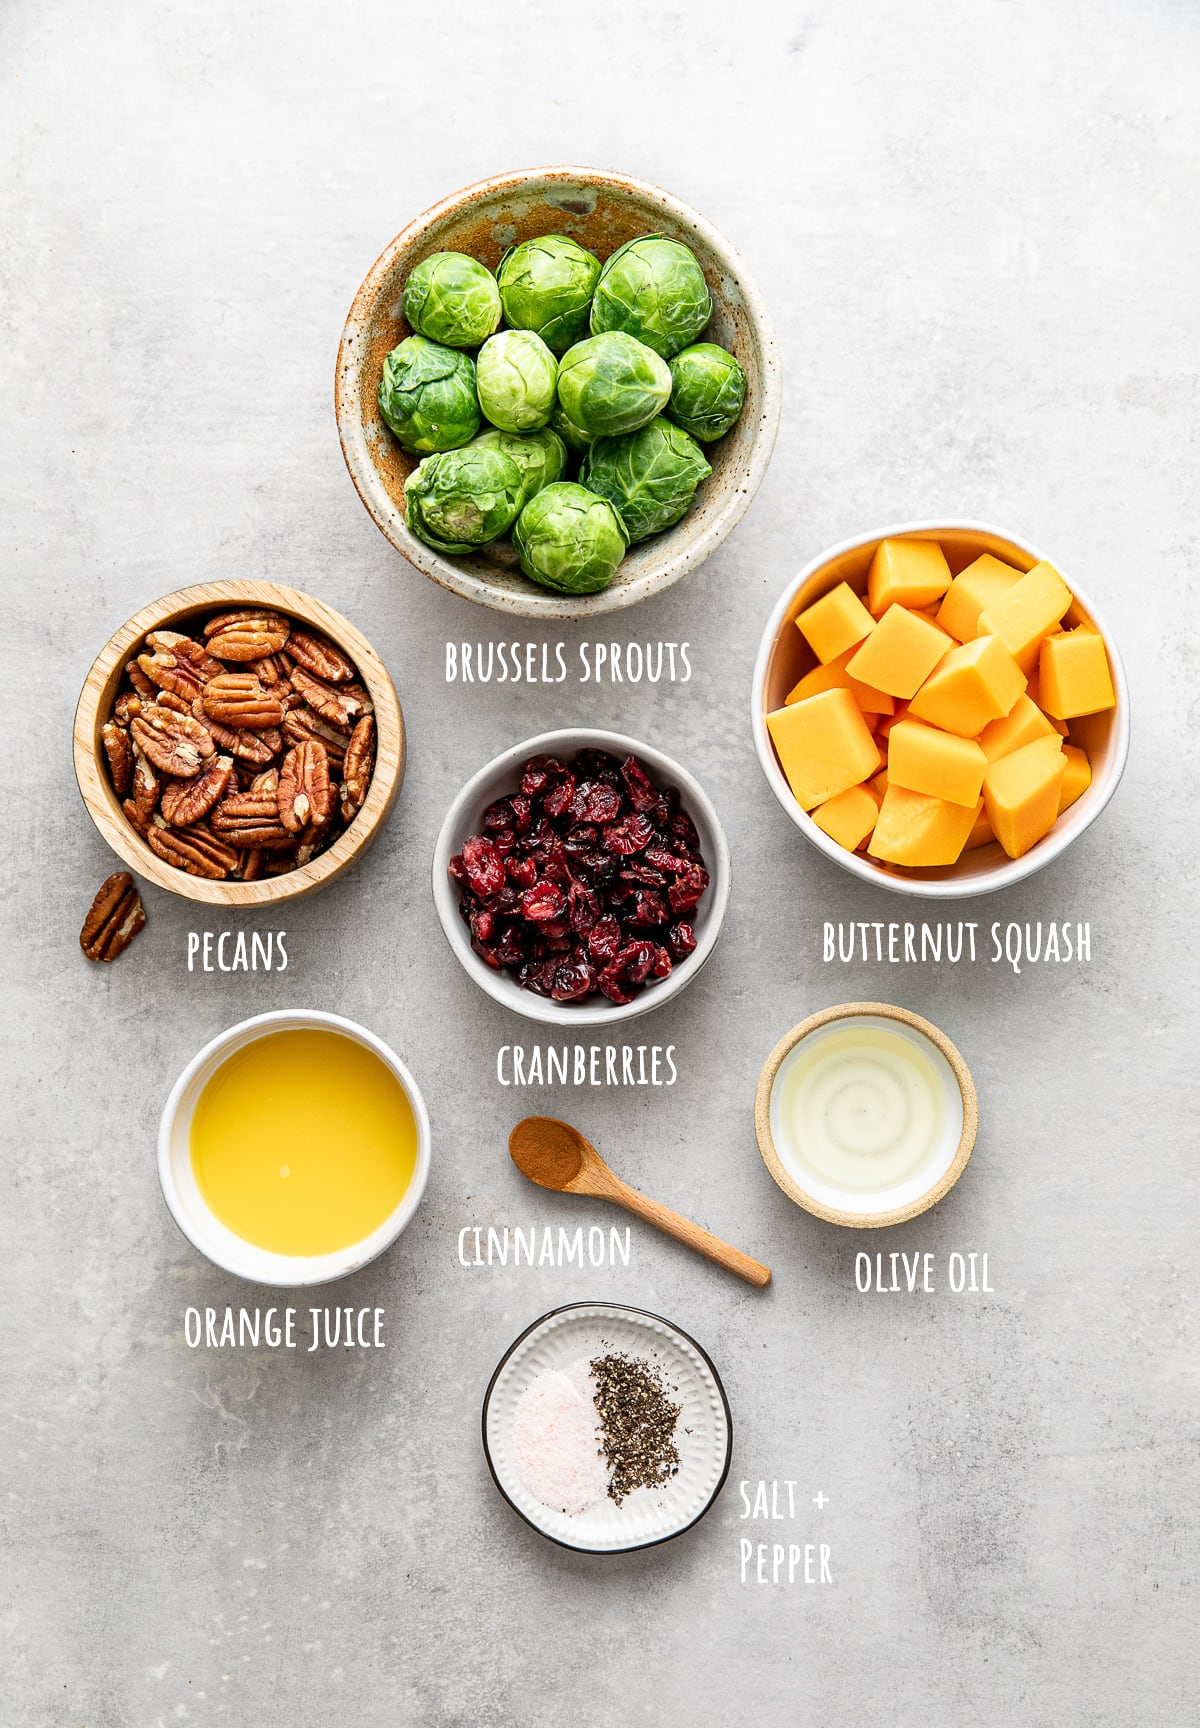 top down view of ingredients used to make vegan roasted brussles sprouts and butternut squash with cranberries and pecans.